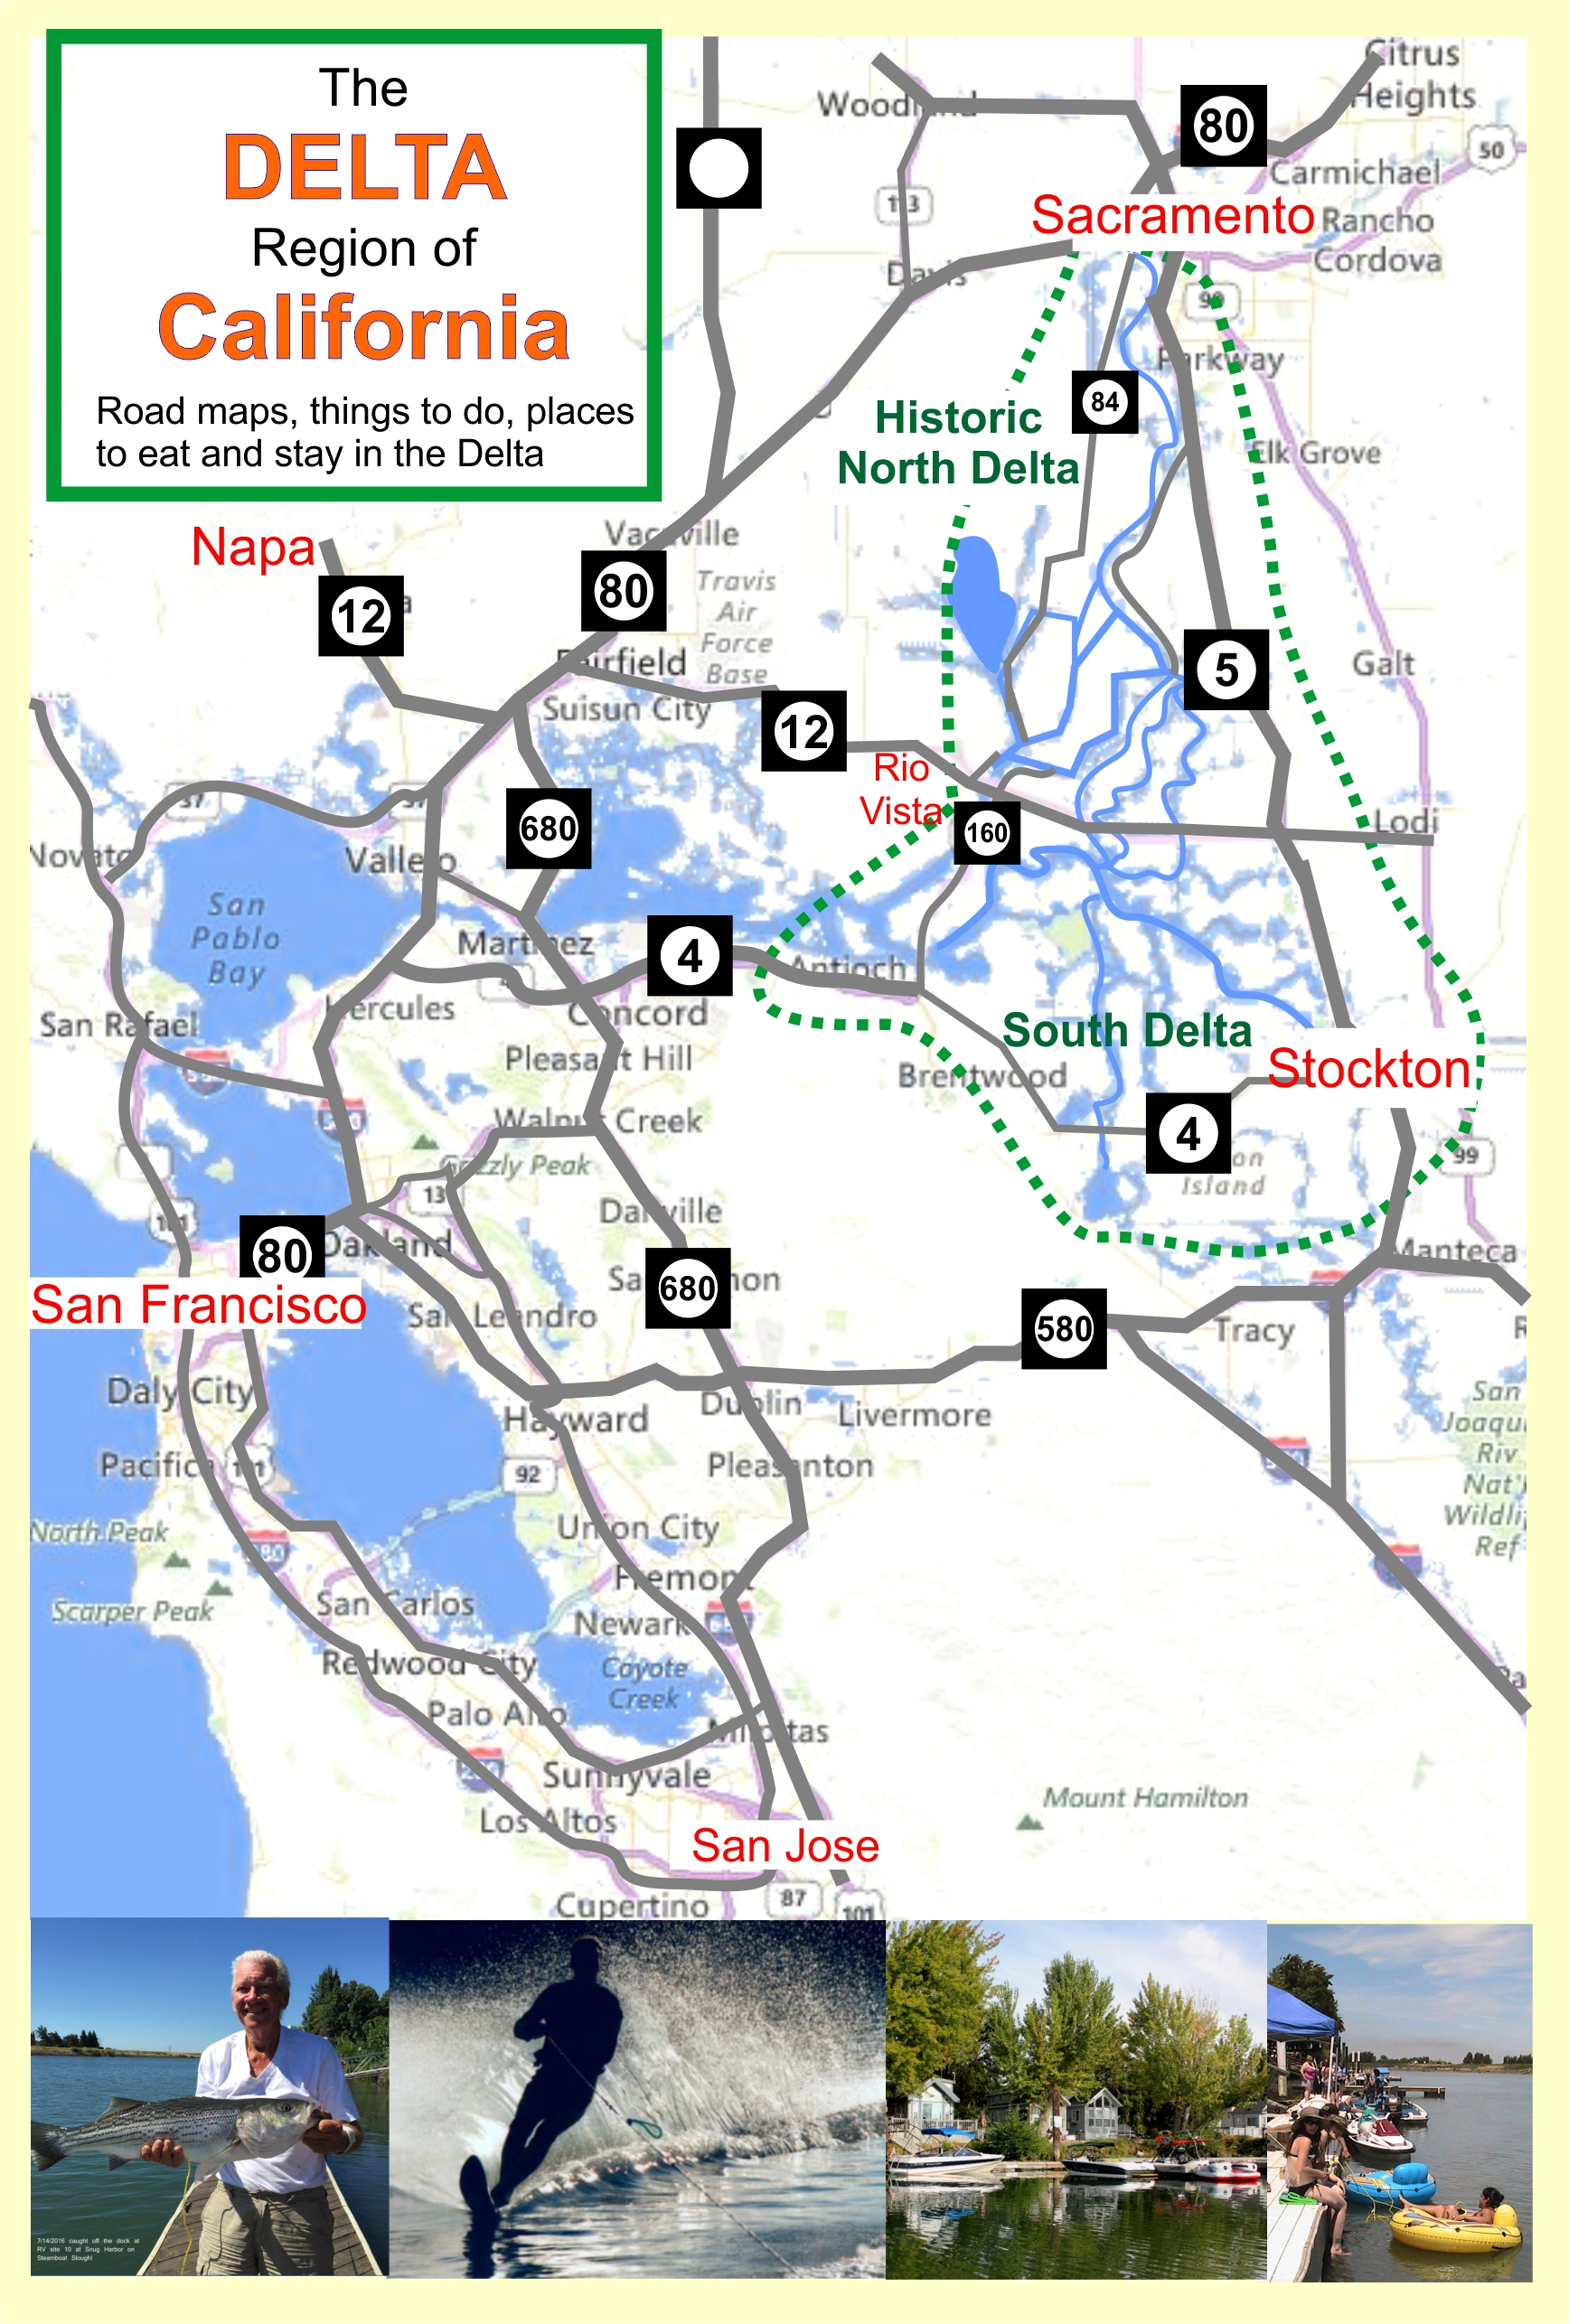 California Delta Map Fishing - Klipy - California Delta Bass Fishing Map